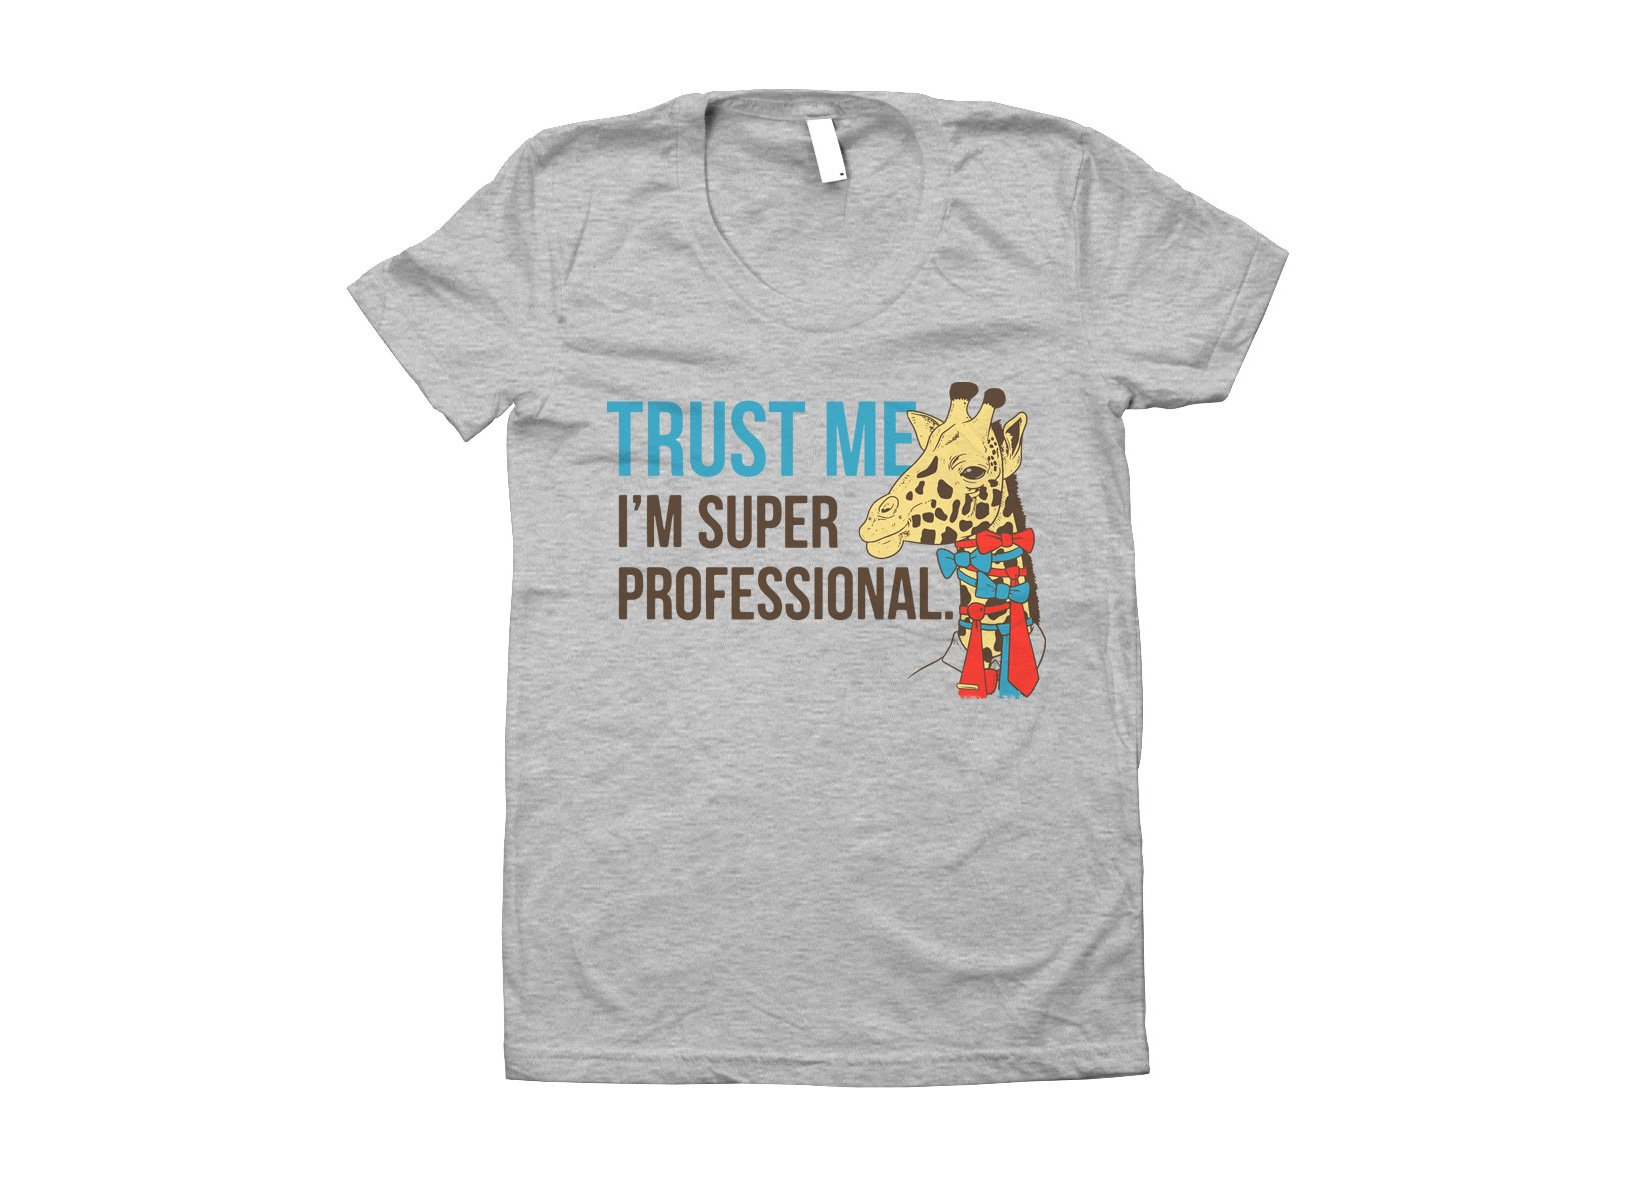 Trust Me I'm Super Professional on Juniors T-Shirt